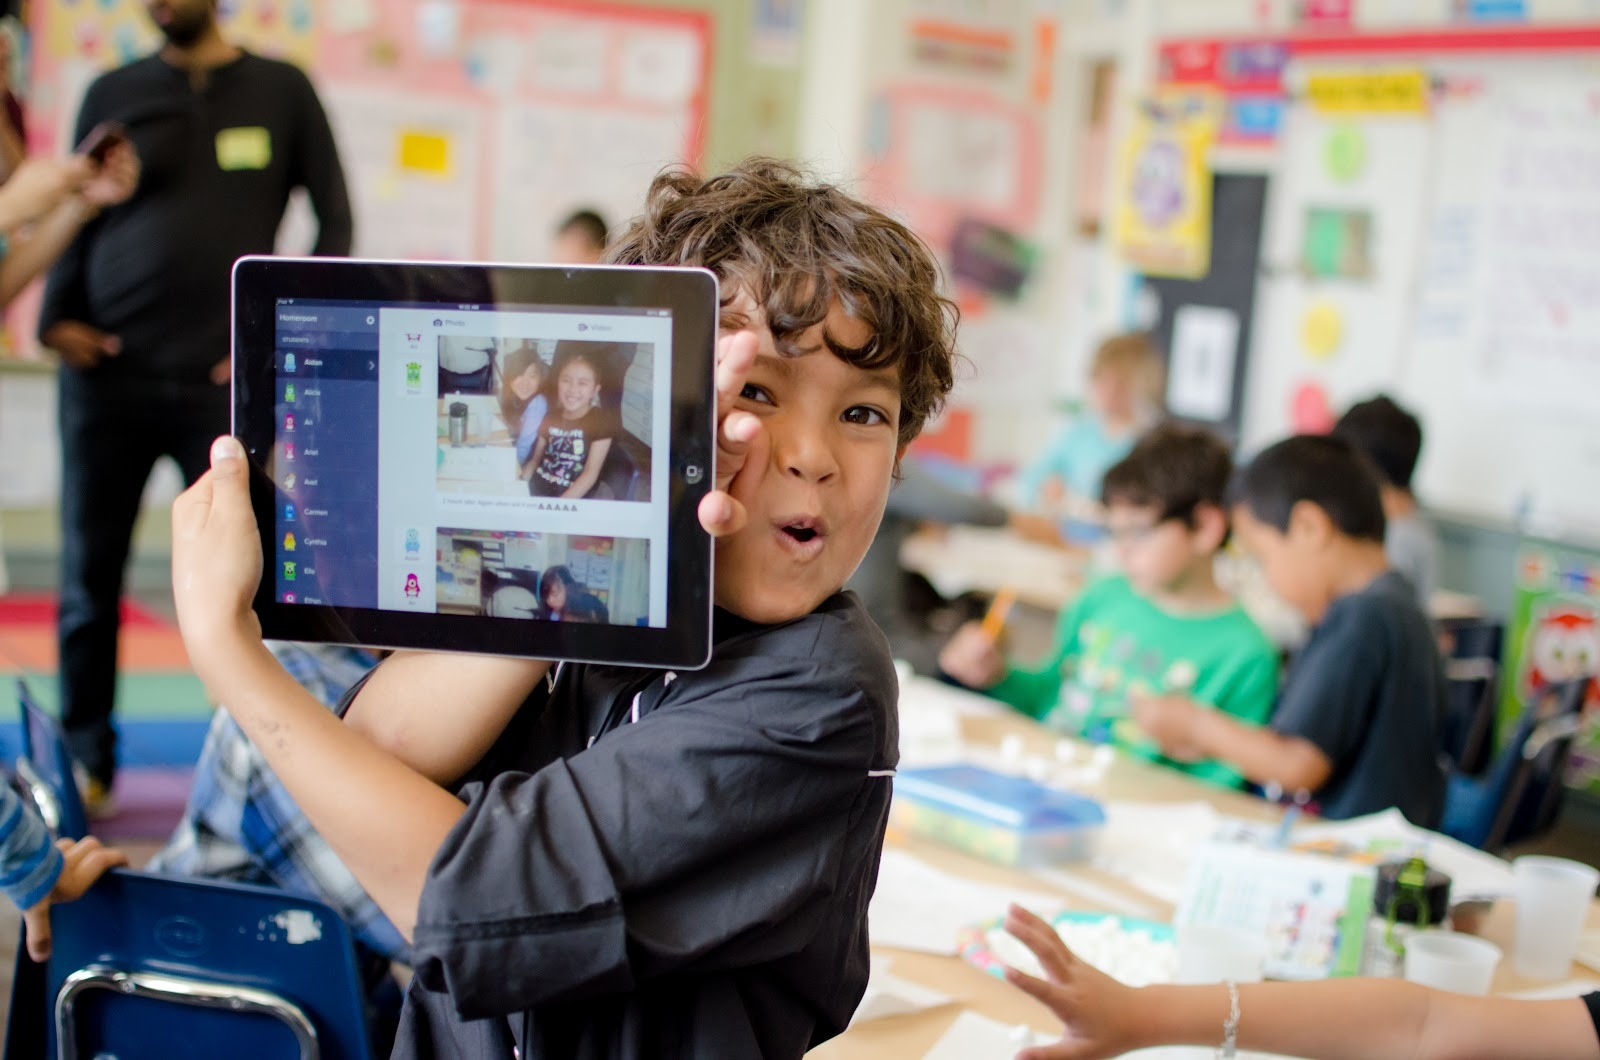 Online teaching platforms: A student holding up a tablet with ClassDojo displayed on the screen